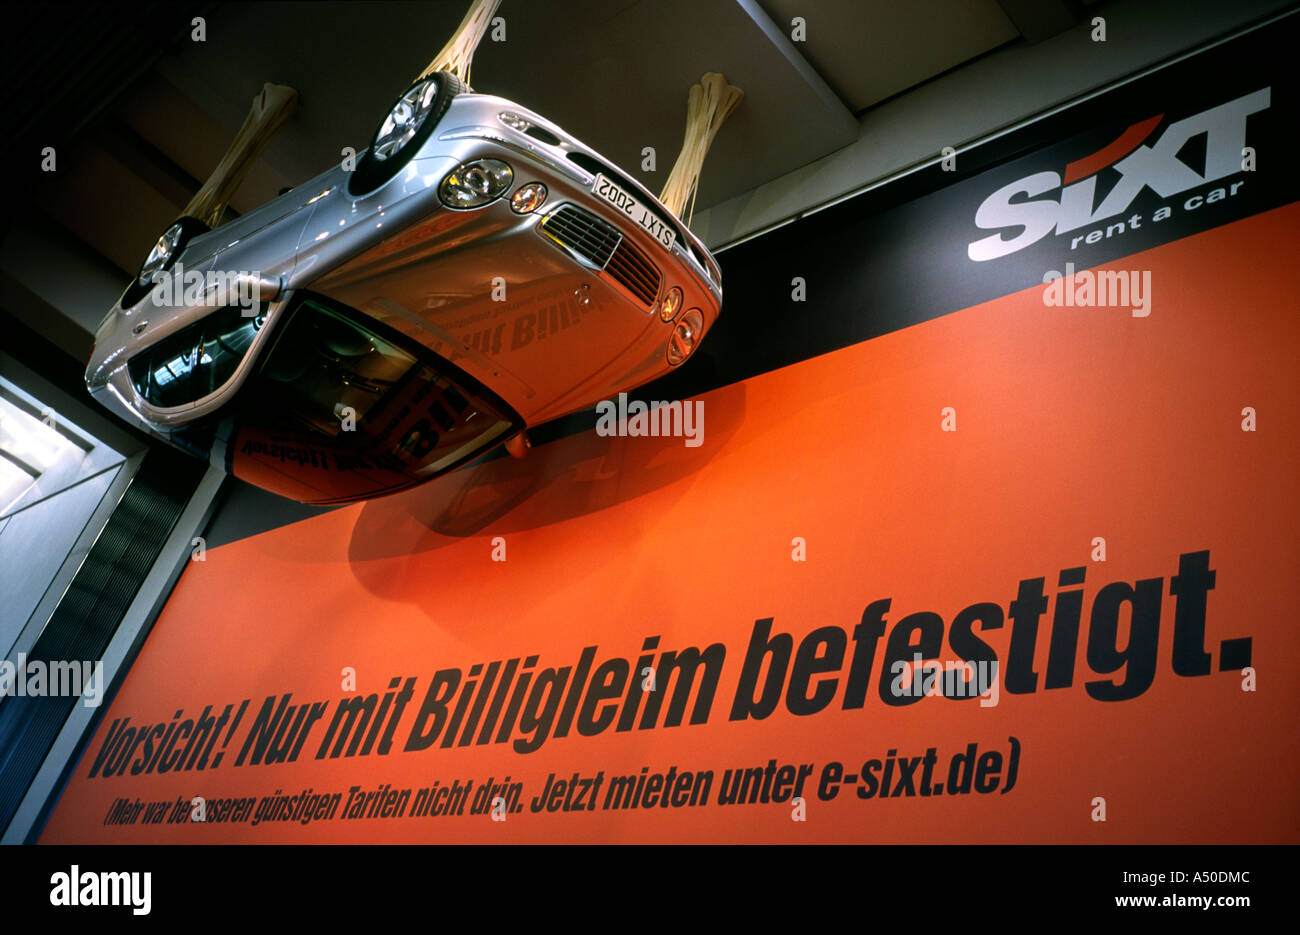 sixt car rental billboard at fuhlsb ttel airport in hamburg stock photo 6374923 alamy. Black Bedroom Furniture Sets. Home Design Ideas